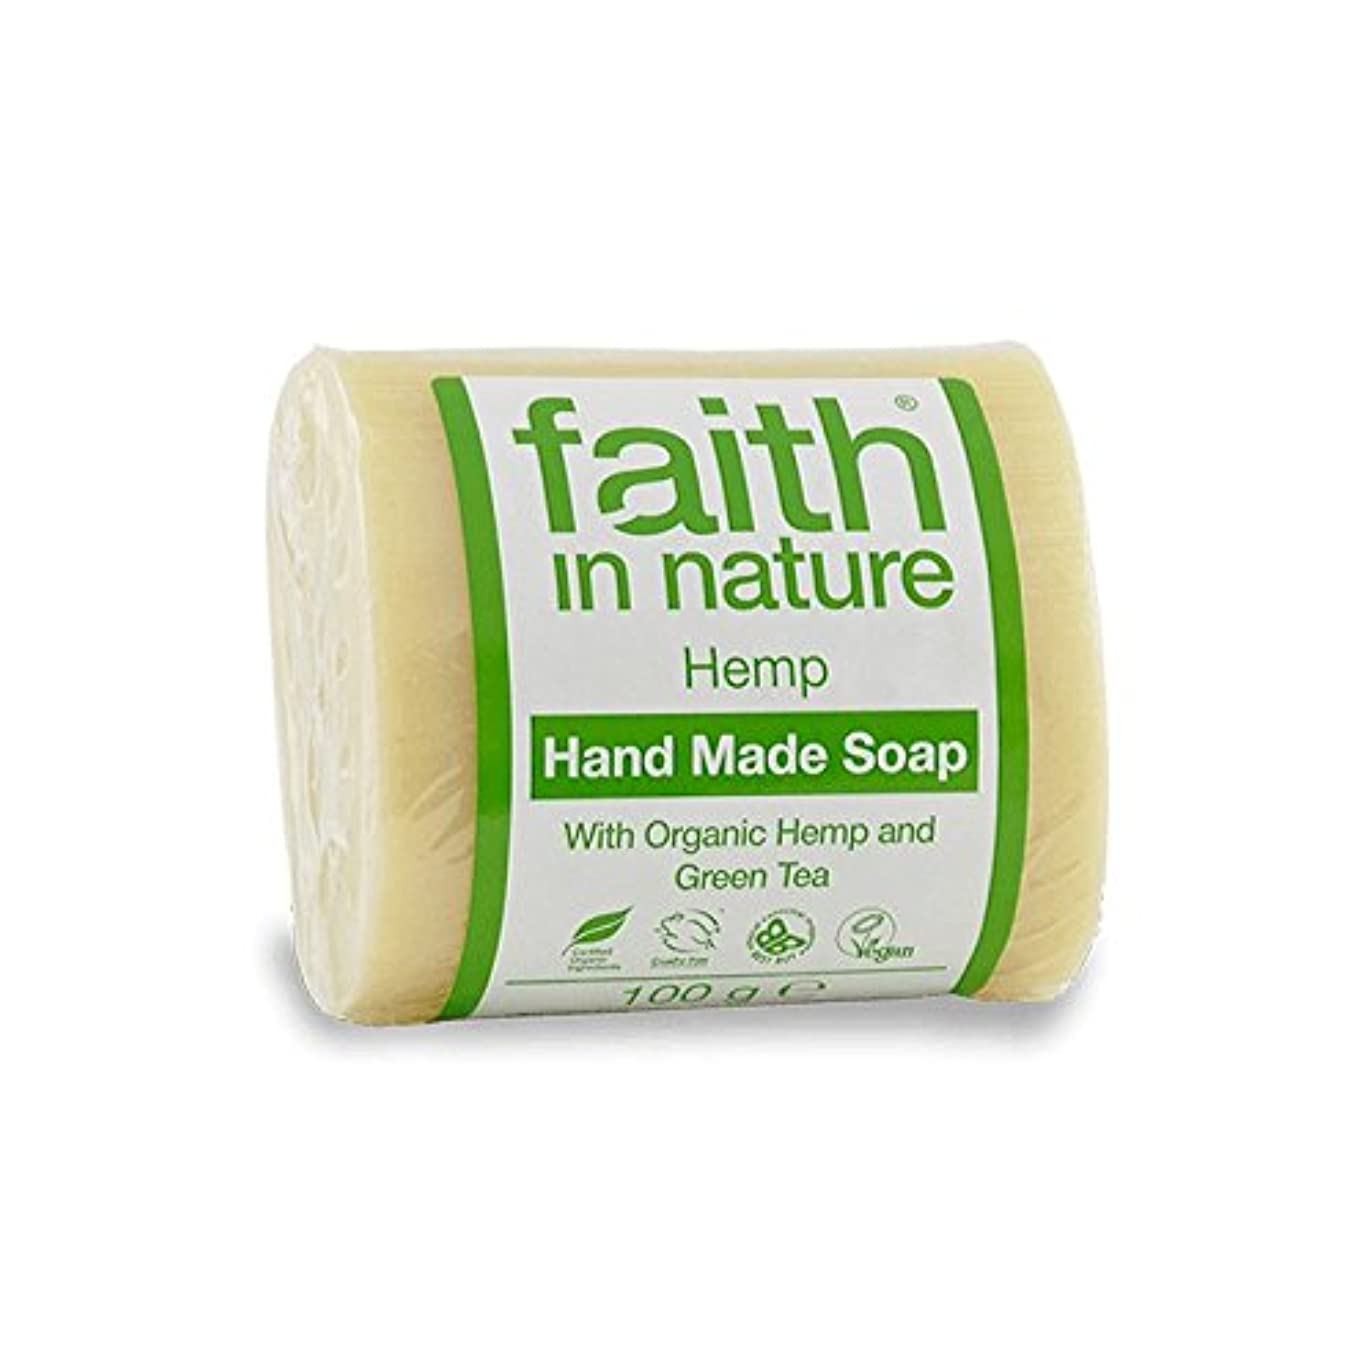 Faith in Nature Hemp with Green Tea Soap 100g (Pack of 2) - 緑茶石鹸100グラムと自然の麻の信仰 (x2) [並行輸入品]